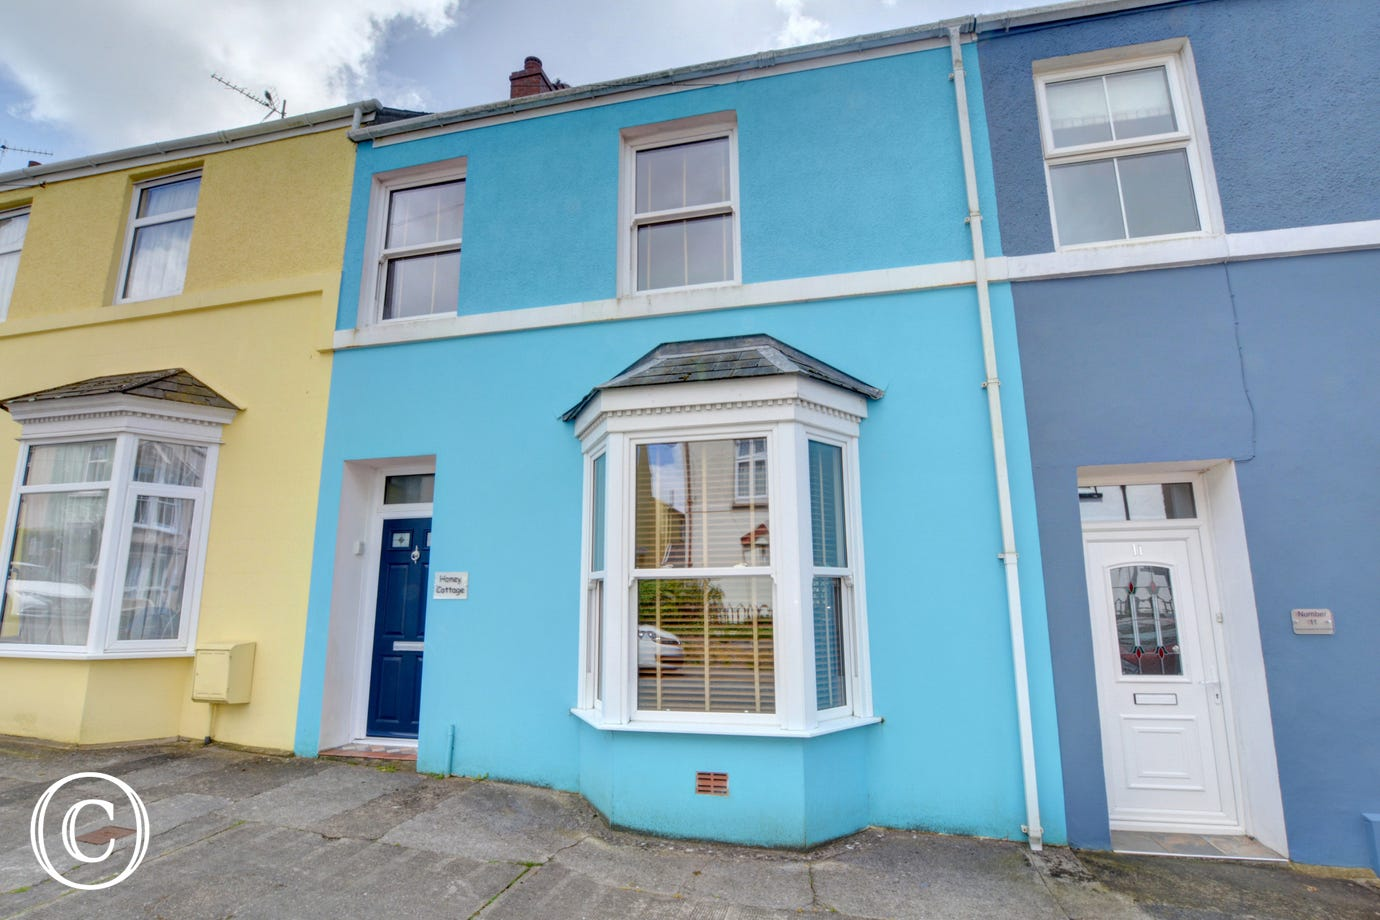 Tenby self catering cottage providing excellent accommodation